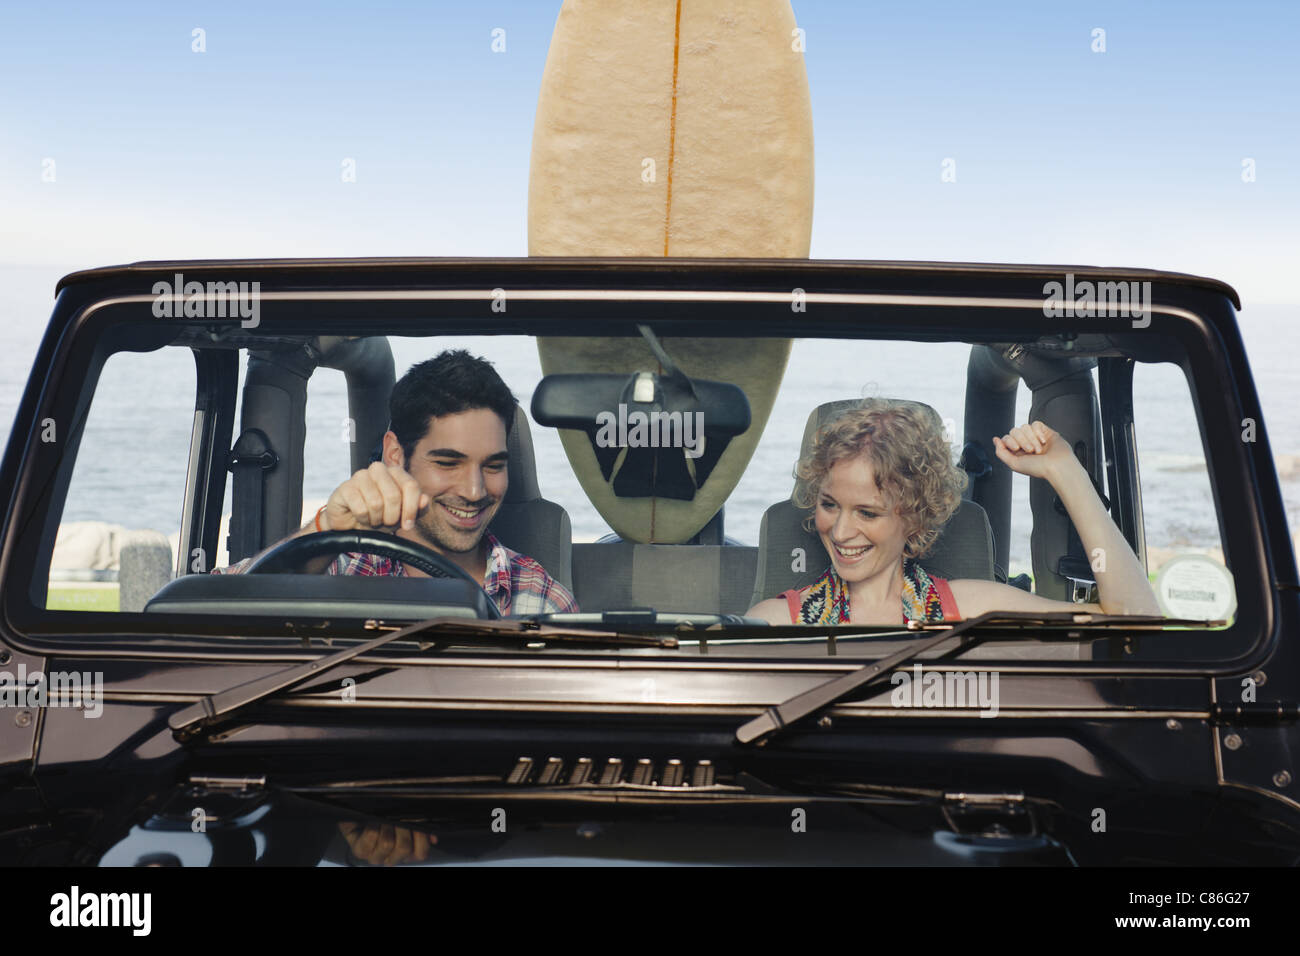 Couple riding in jeep together - Stock Image